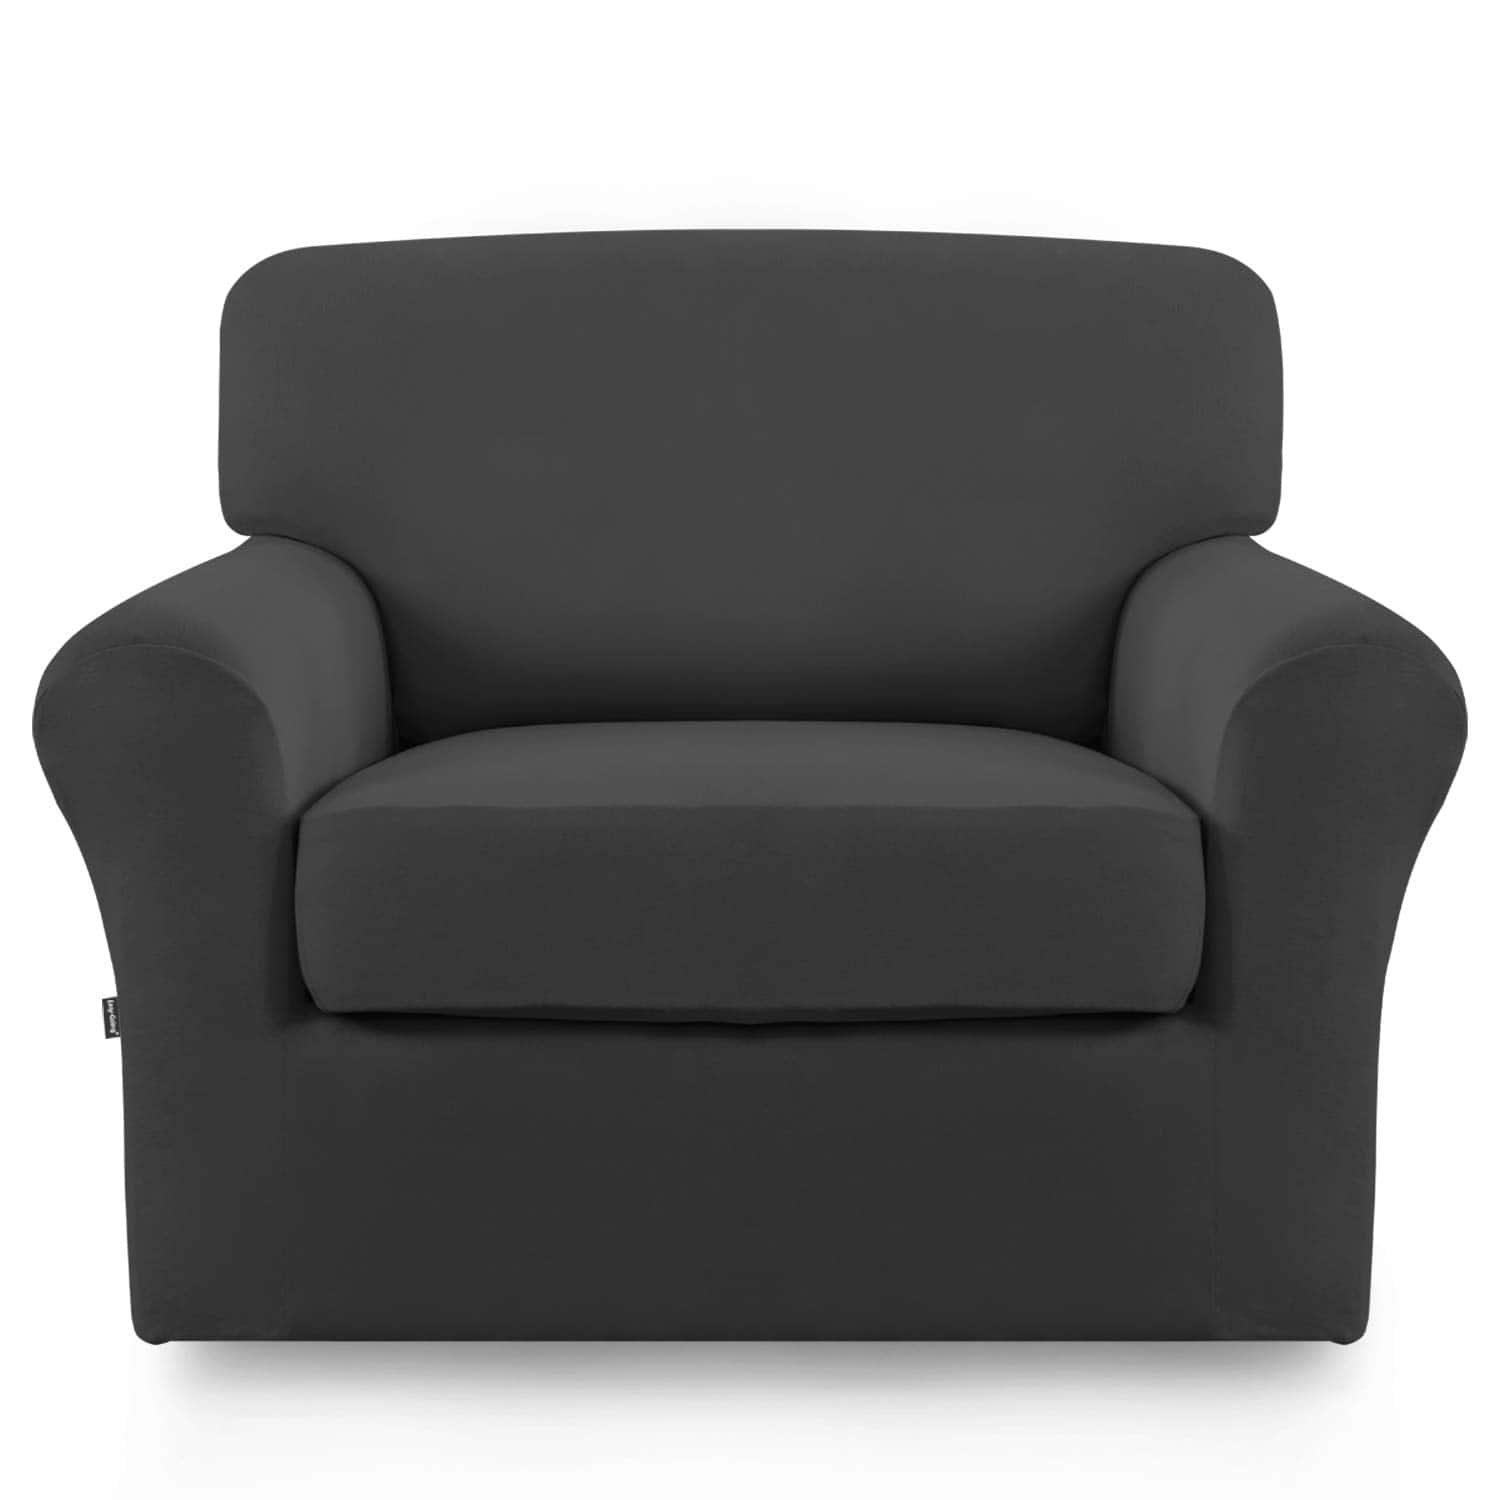 Easy-Going 2-piece sofa slipcover Starting at $16.24 ...